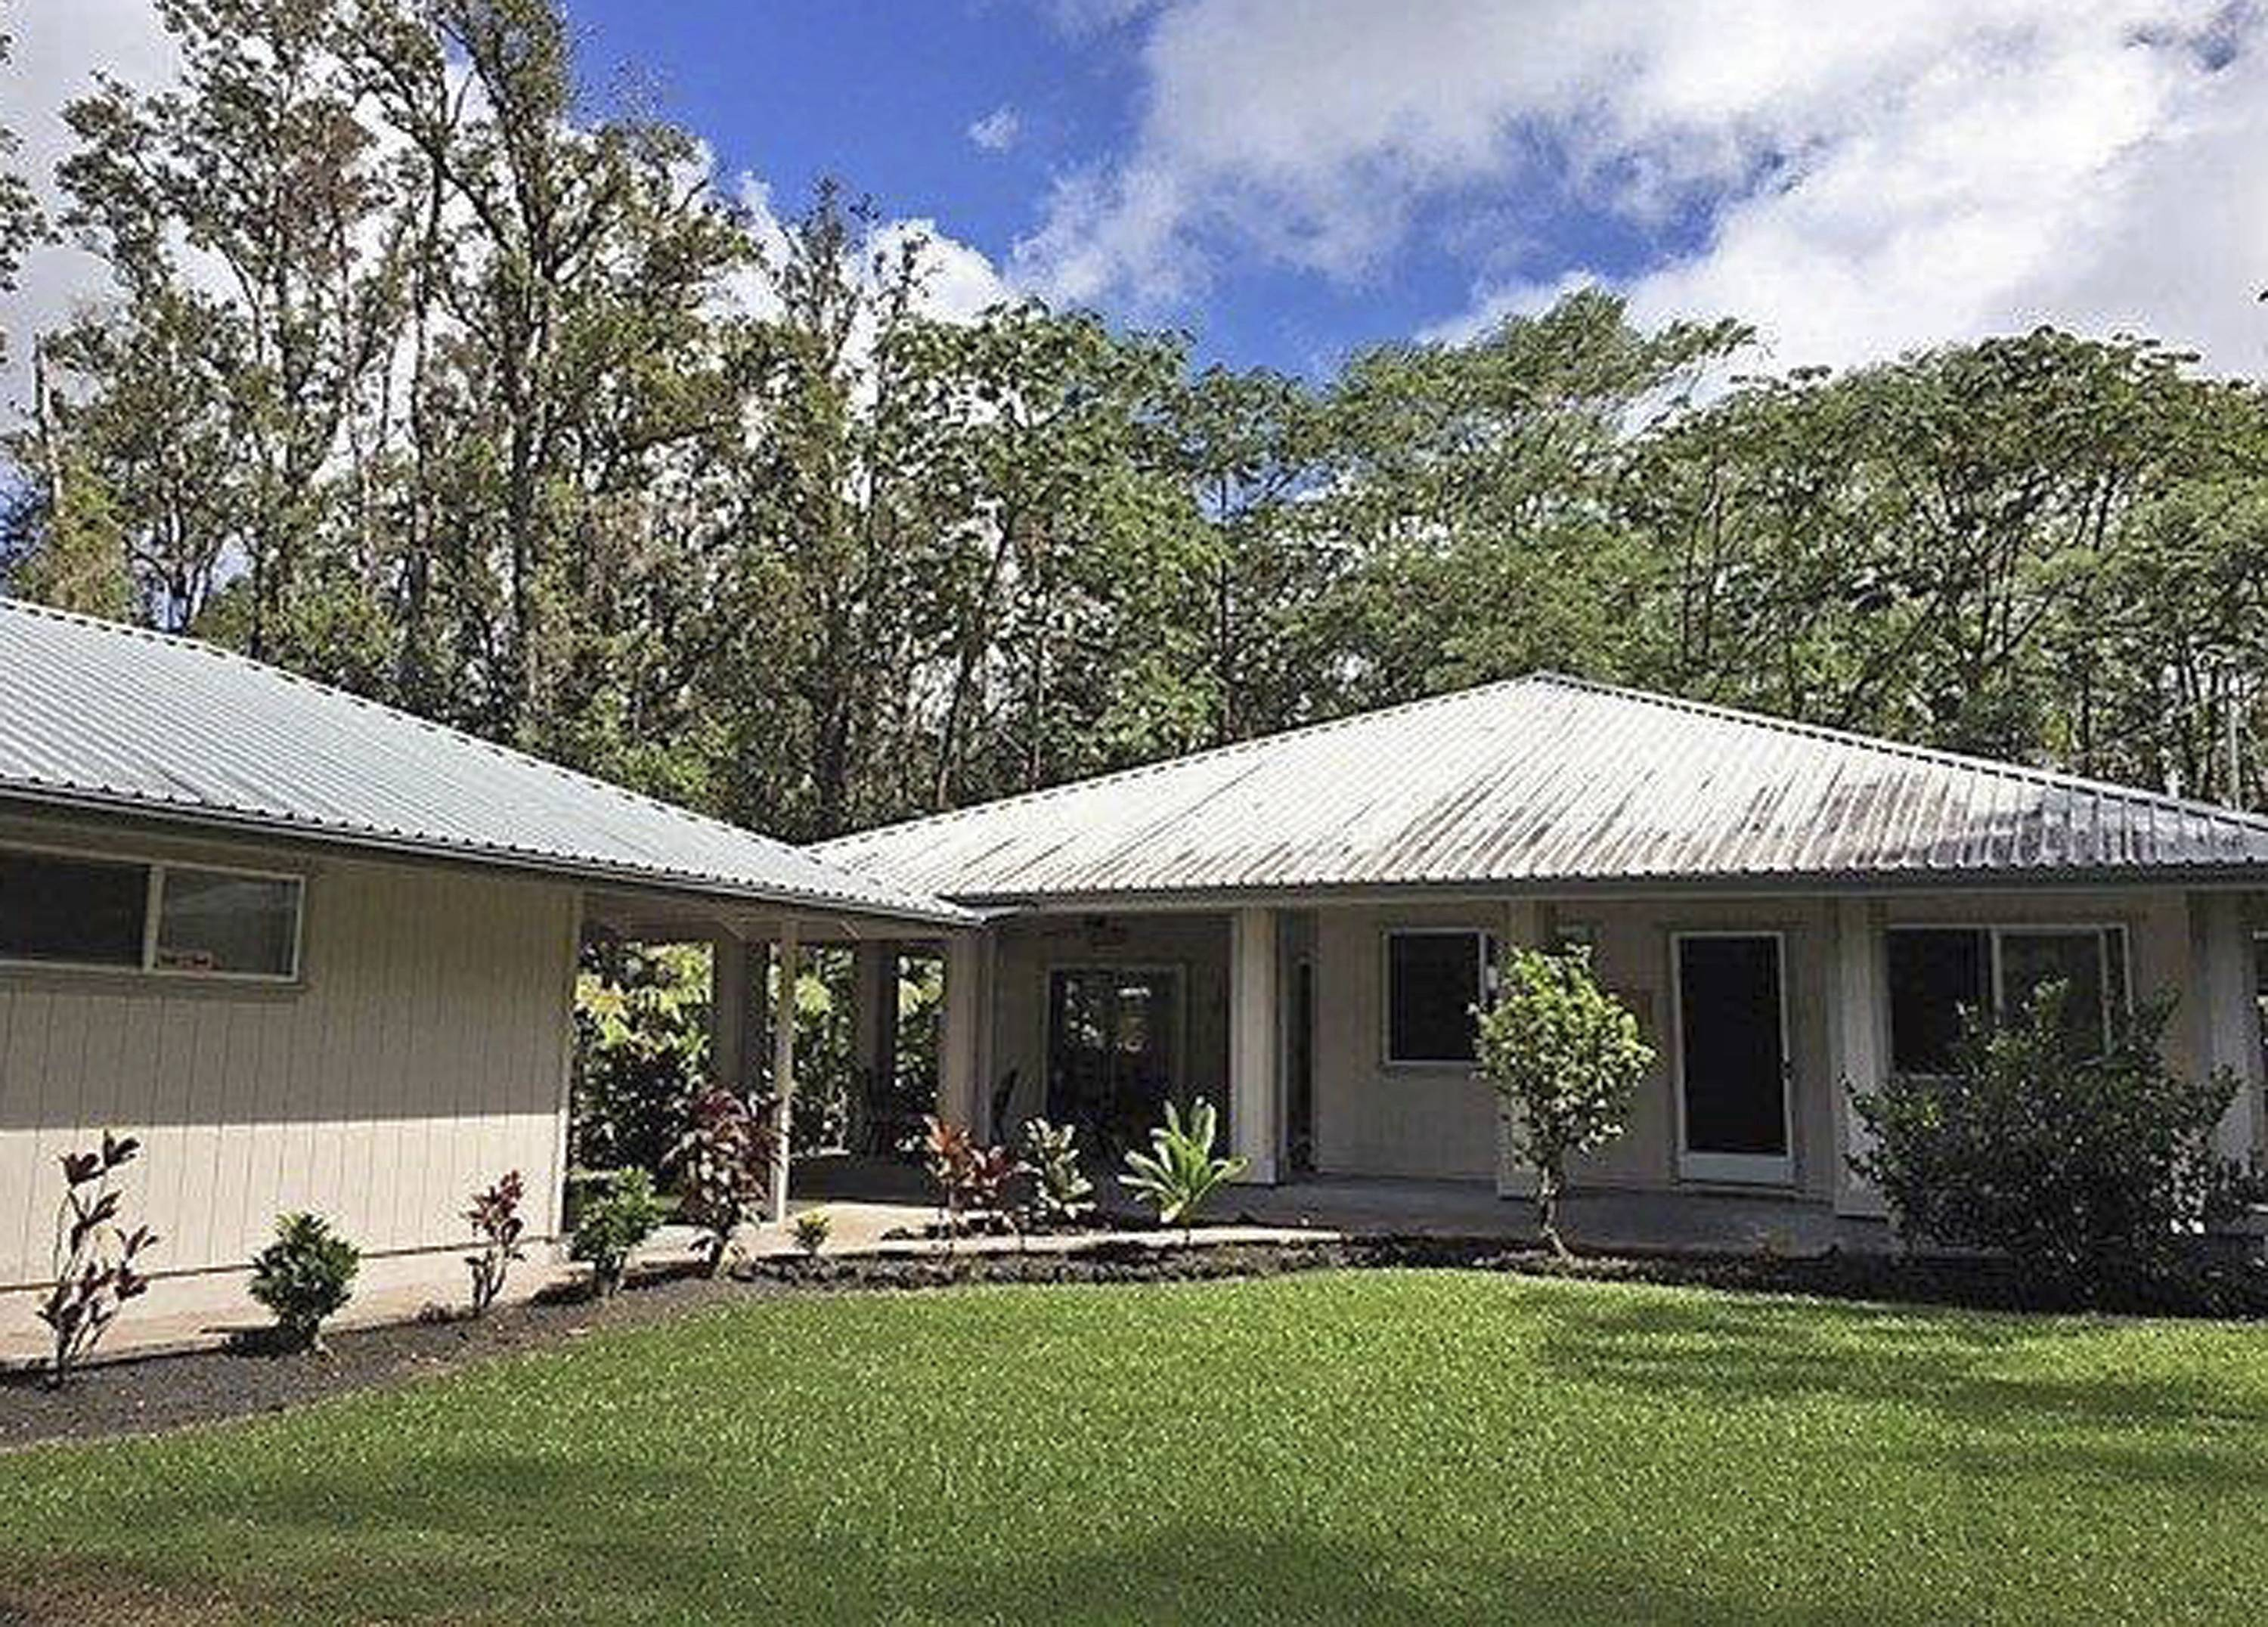 Patricia Deter purchased this home in Leilani Estates near the town of Pahoa on the island of Hawaii.